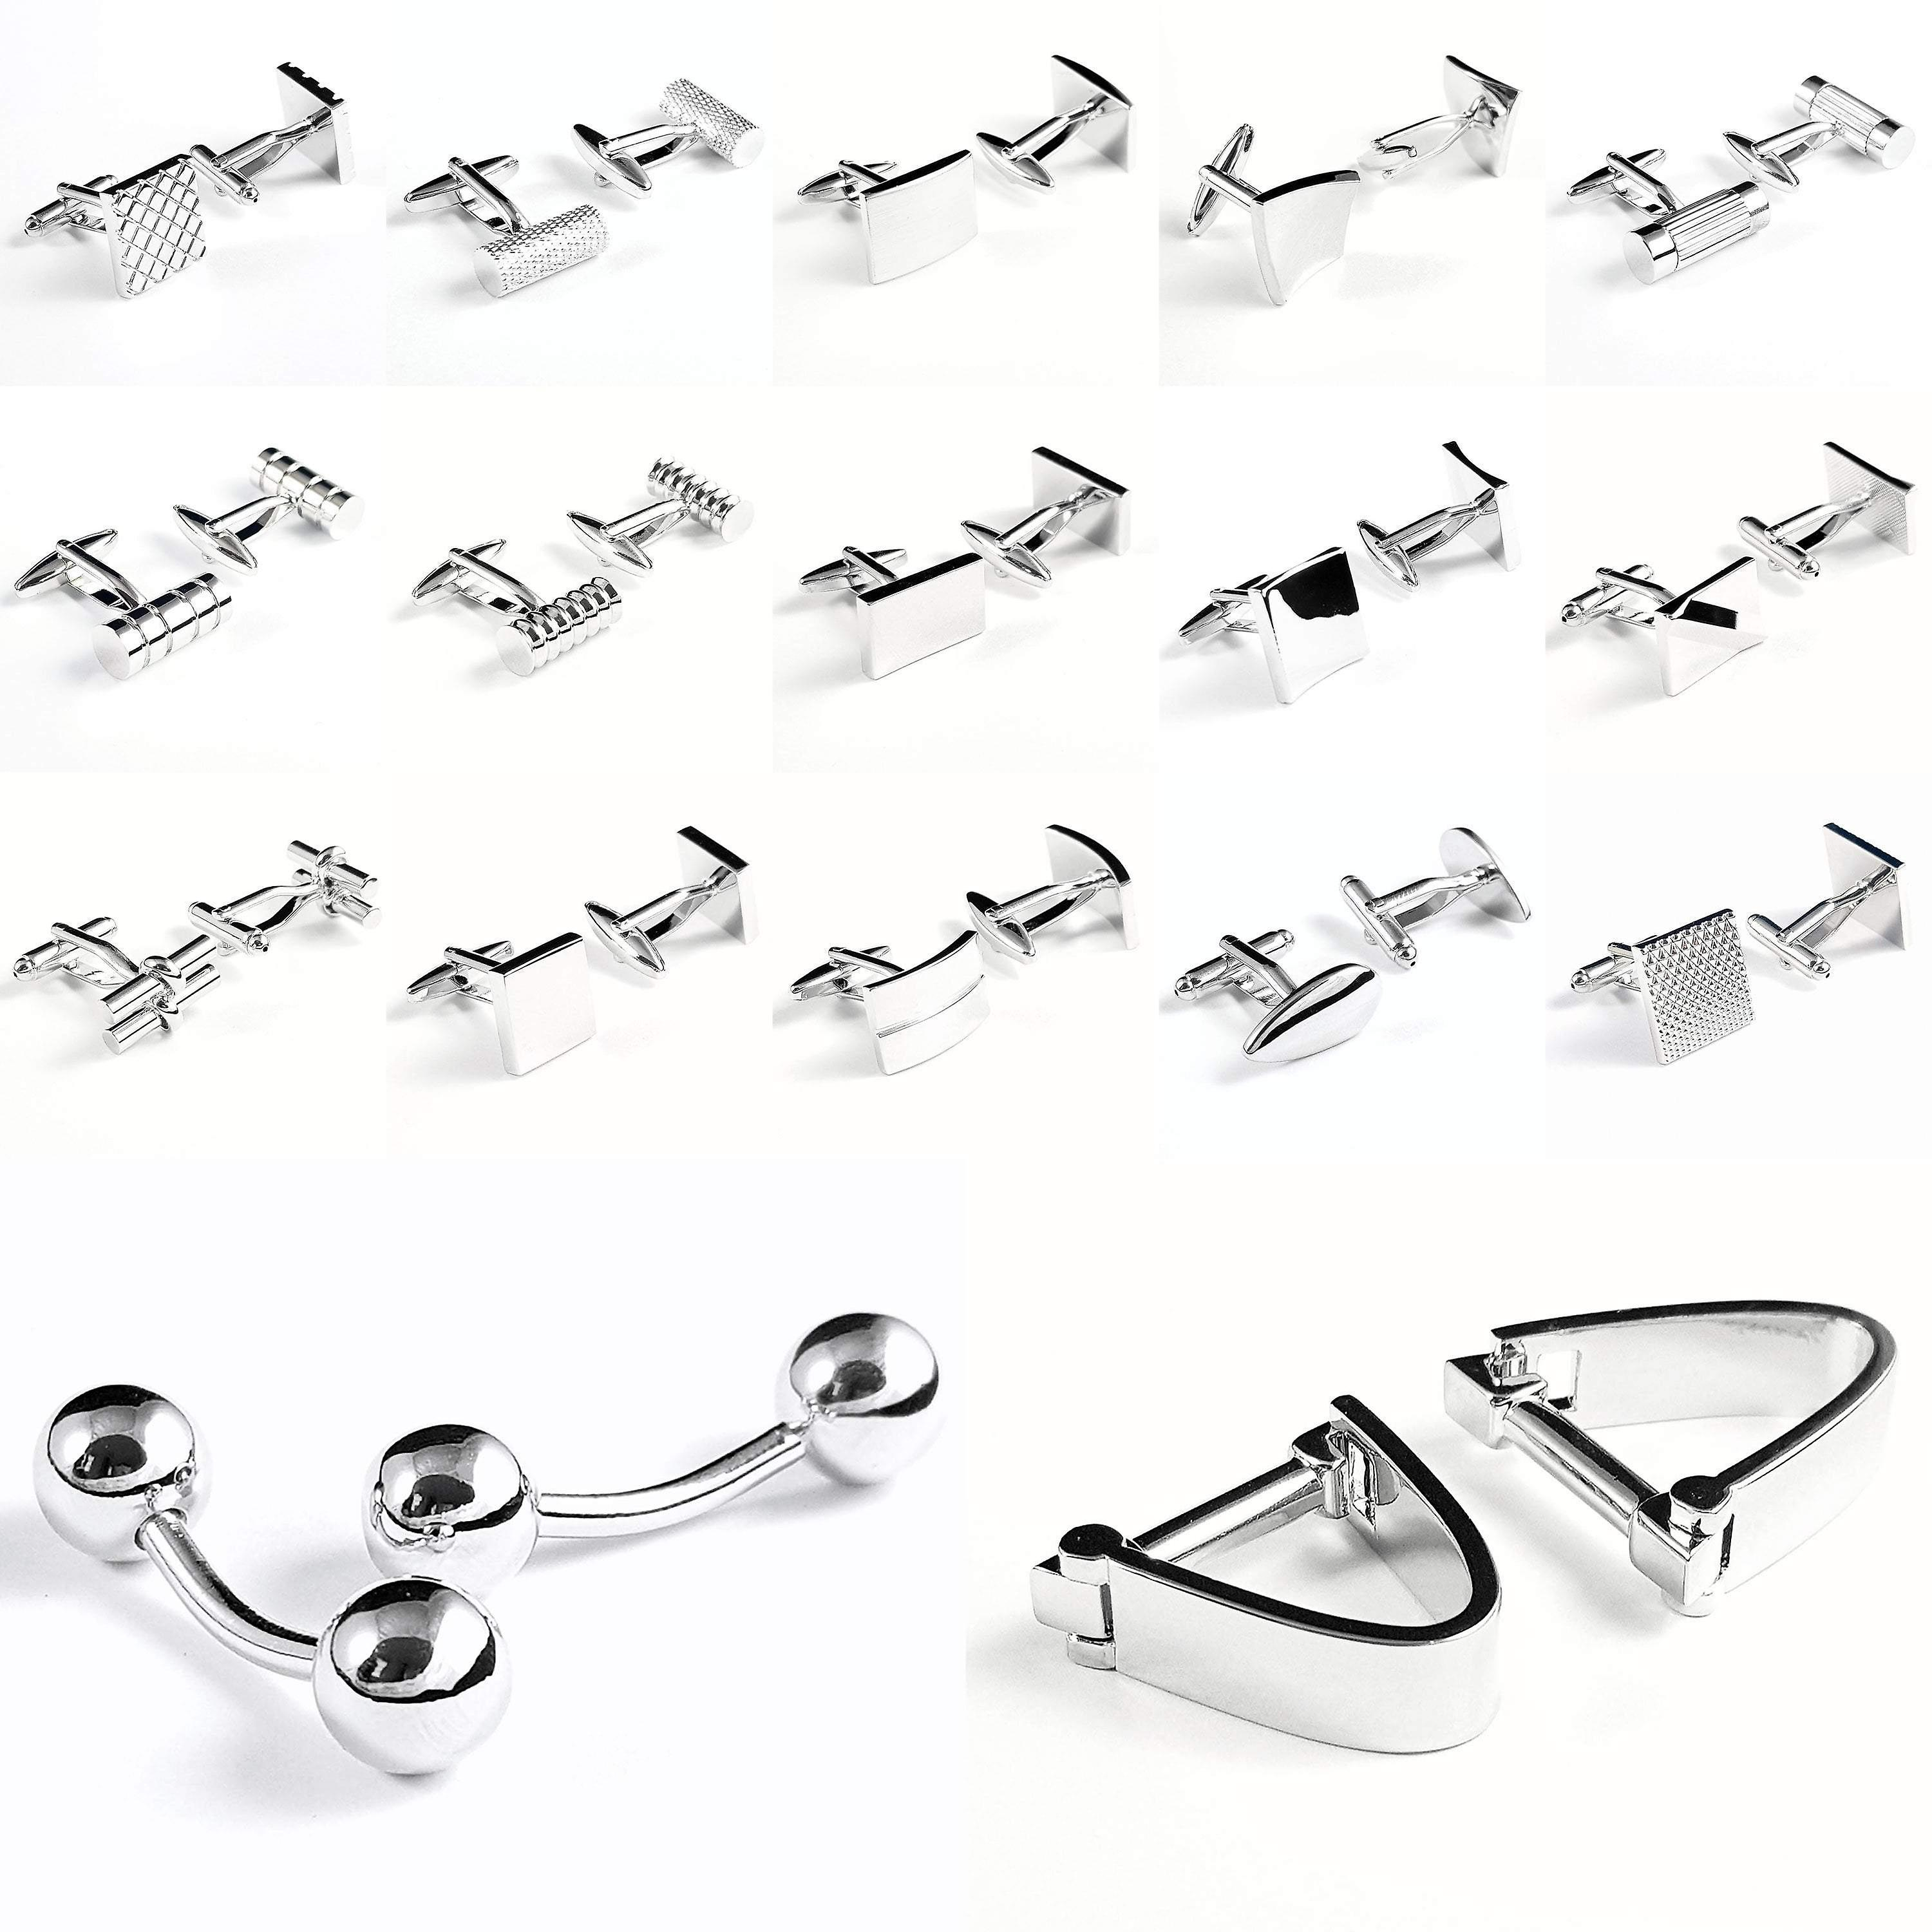 Beveled stainless steel wedding men's suit cuff links